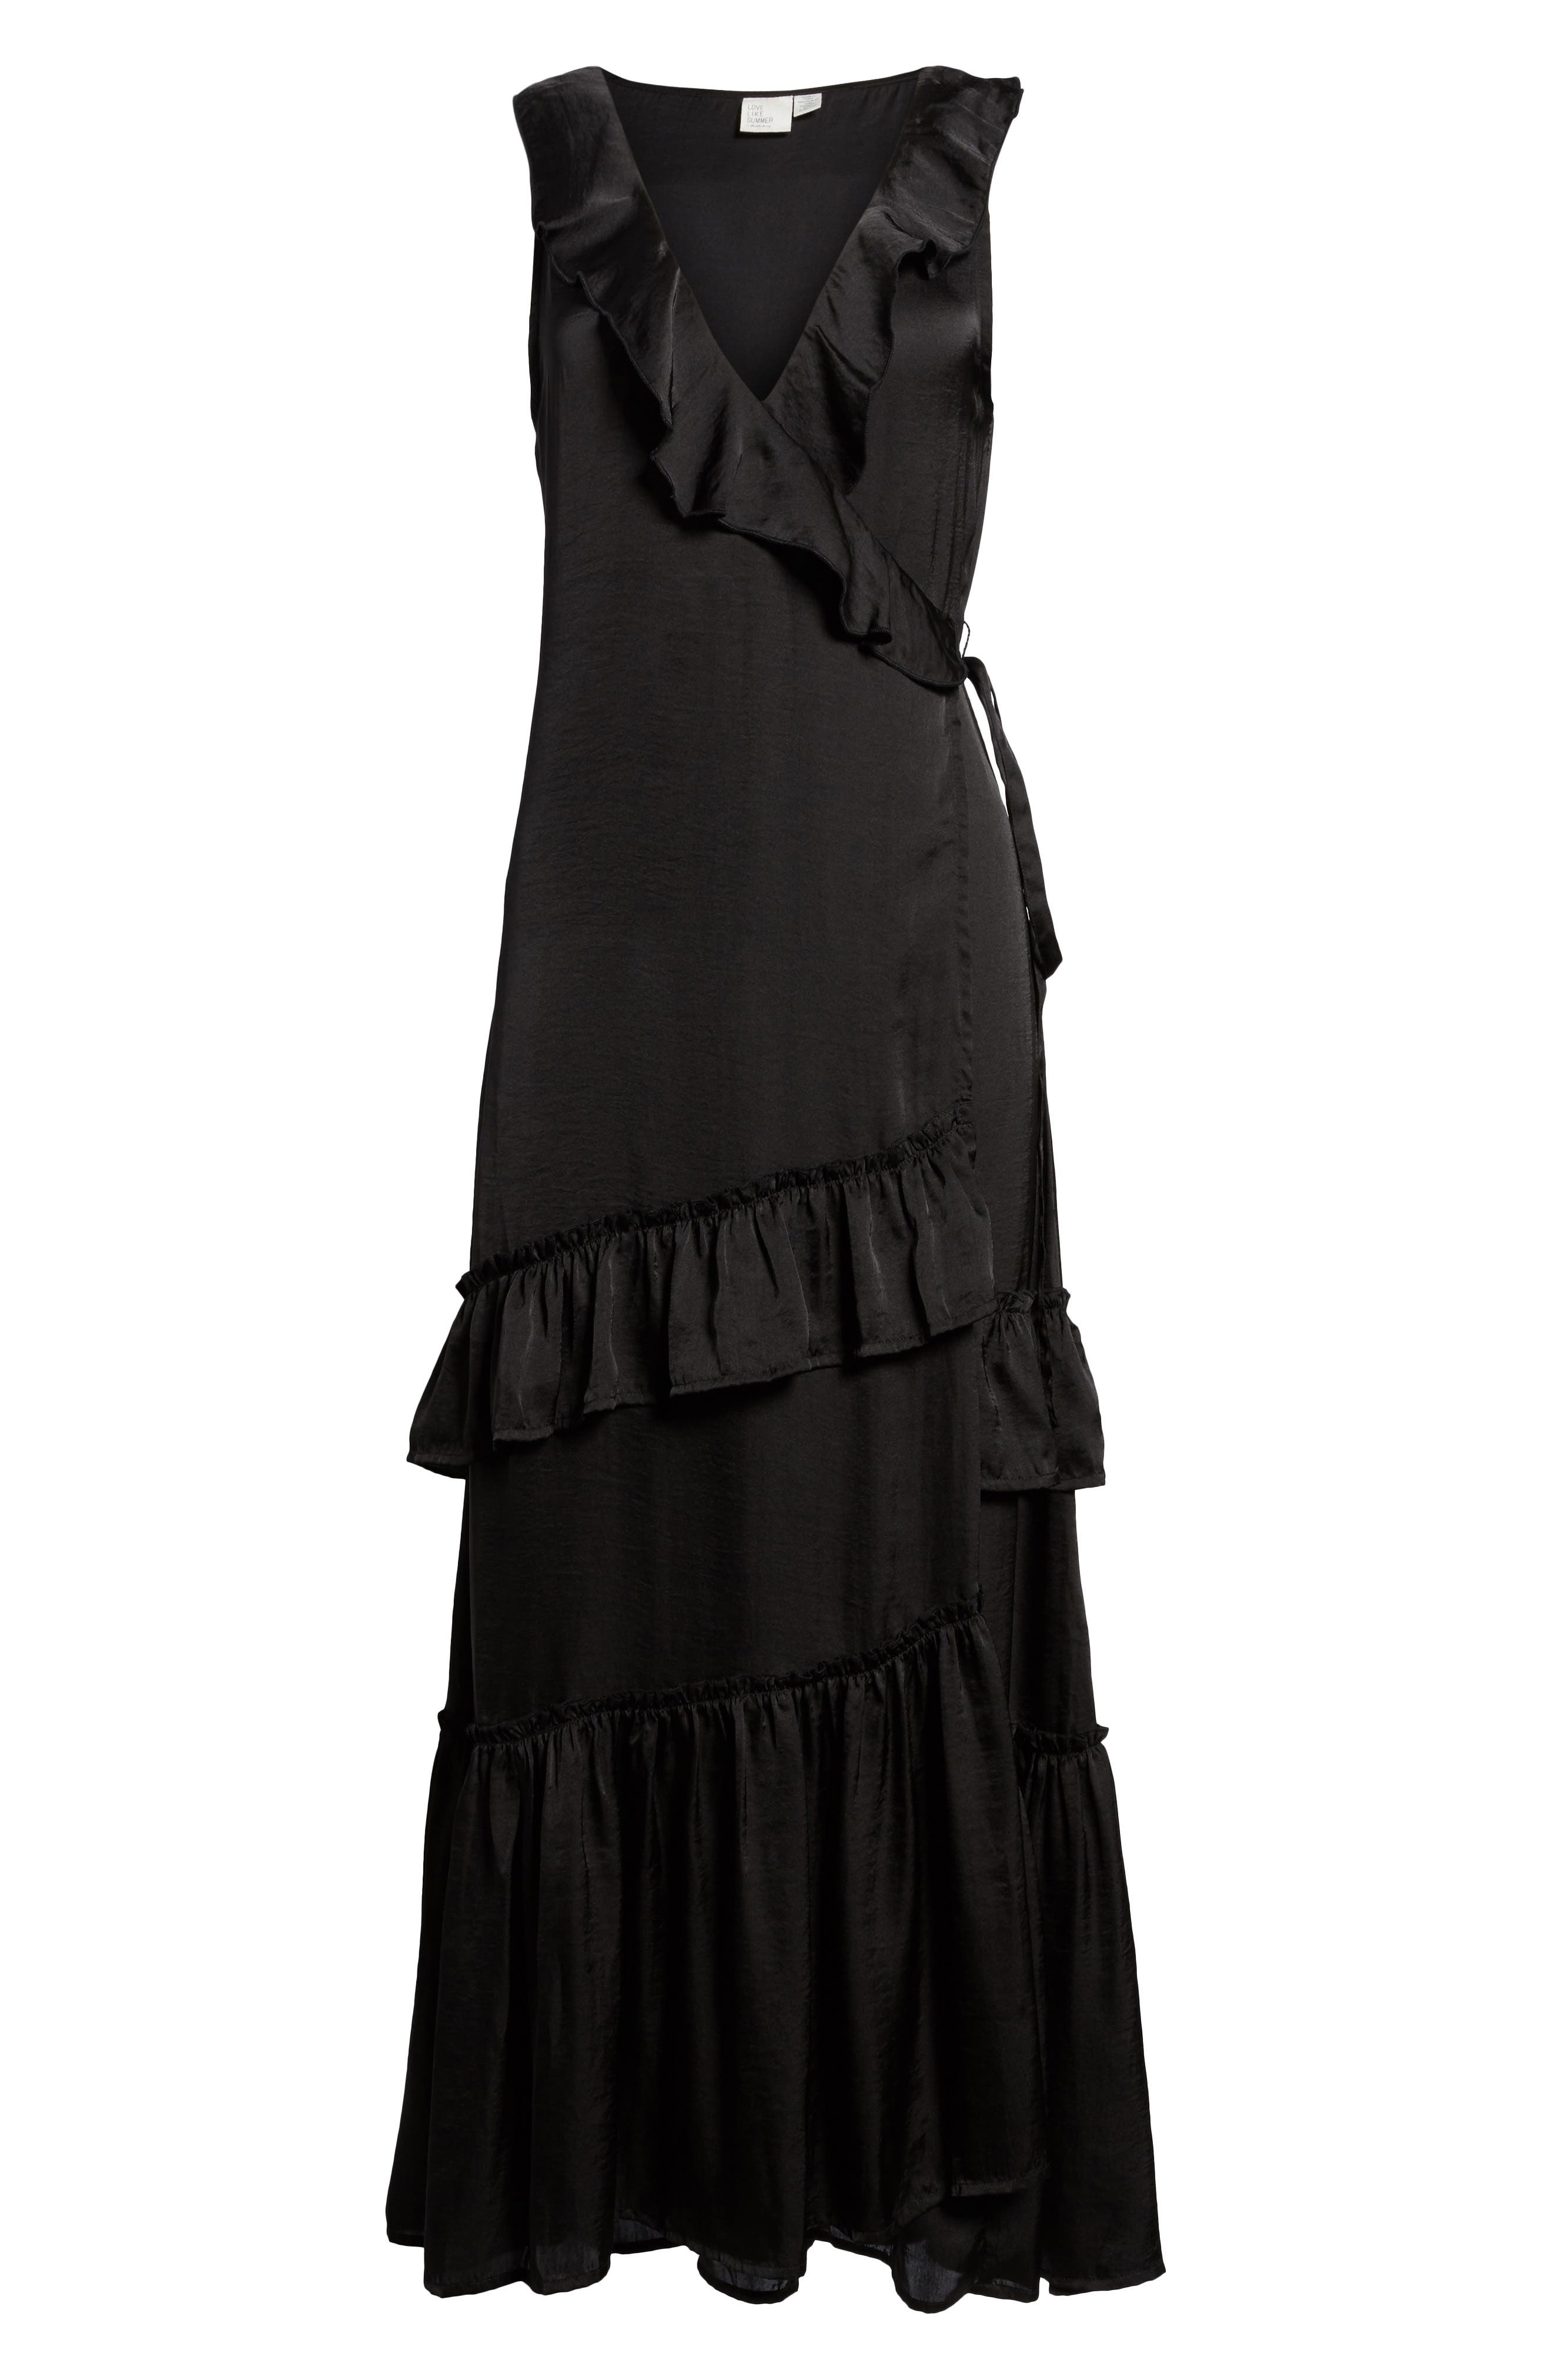 Ruffle Wrap Dress,                             Alternate thumbnail 6, color,                             001